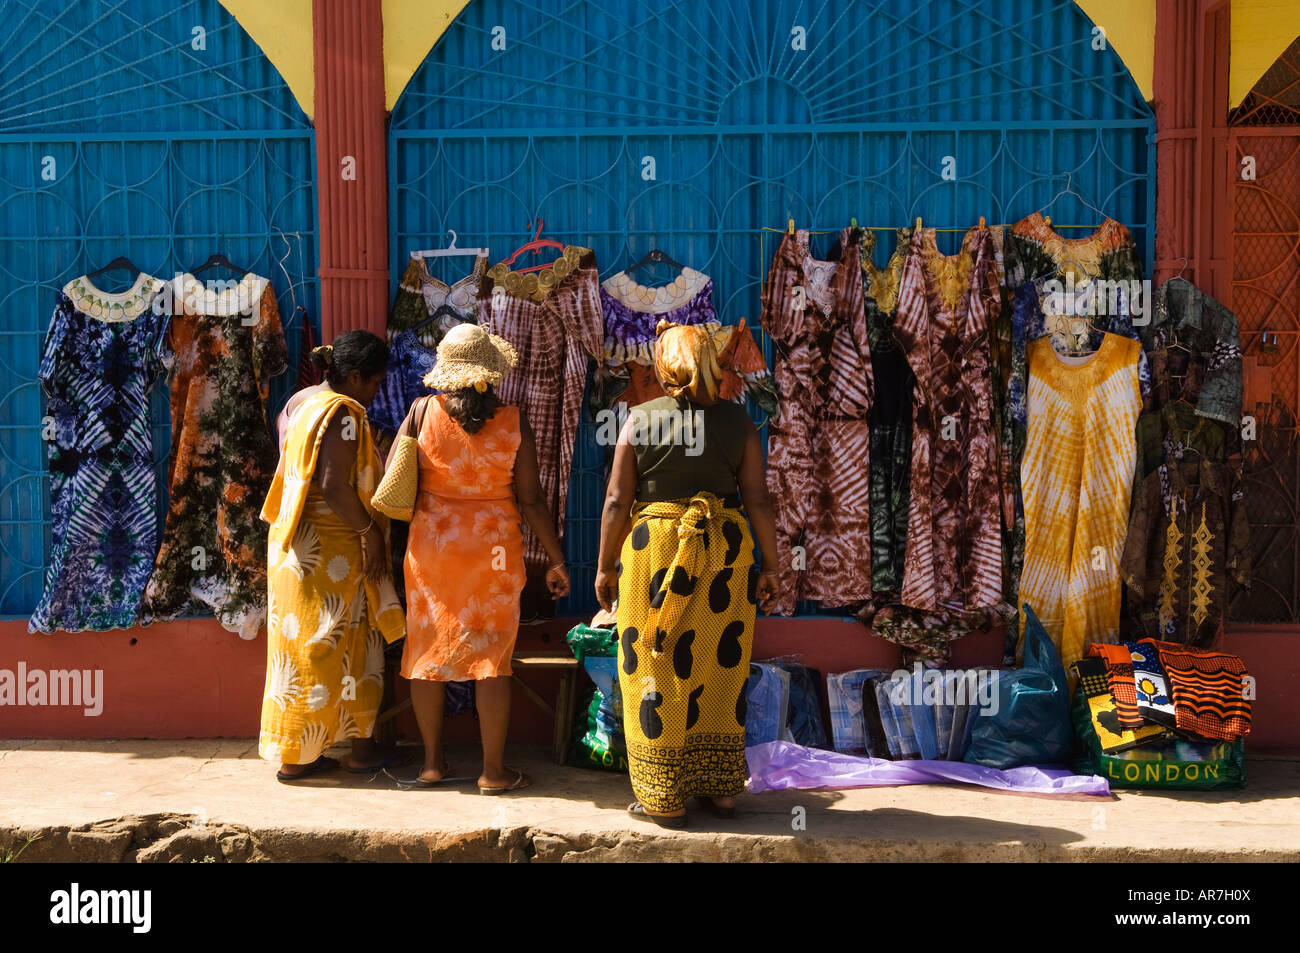 roadside store selling dresses, Hell-Ville, Nosy Be, Madagascar - Stock Image